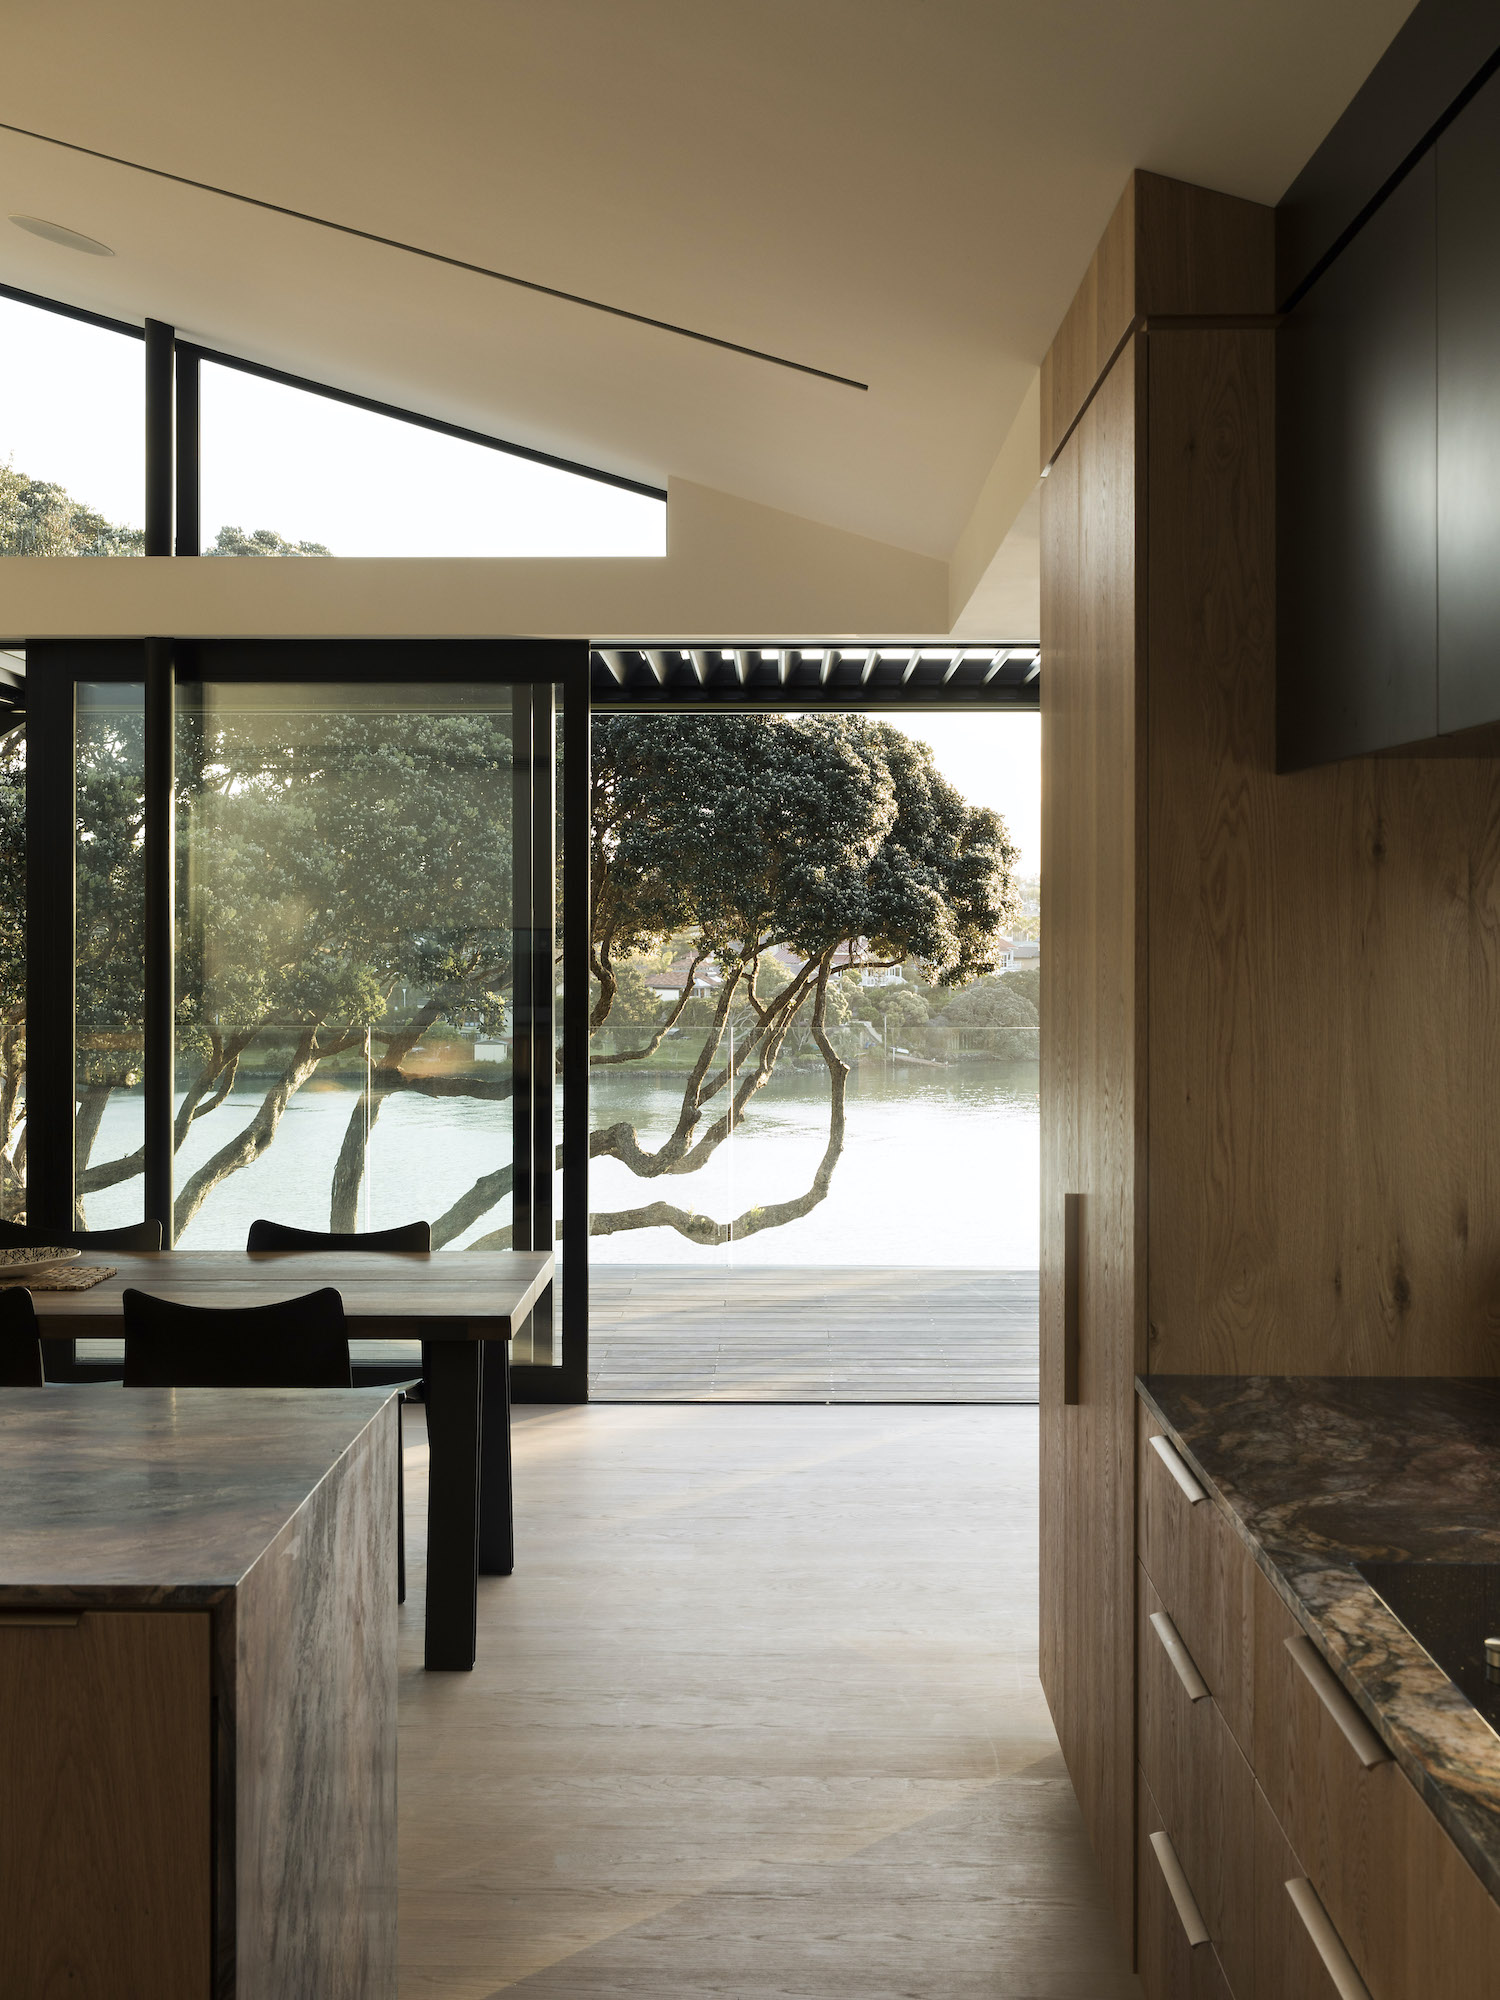 est living herne bay hideaway lloyd hartley architects7